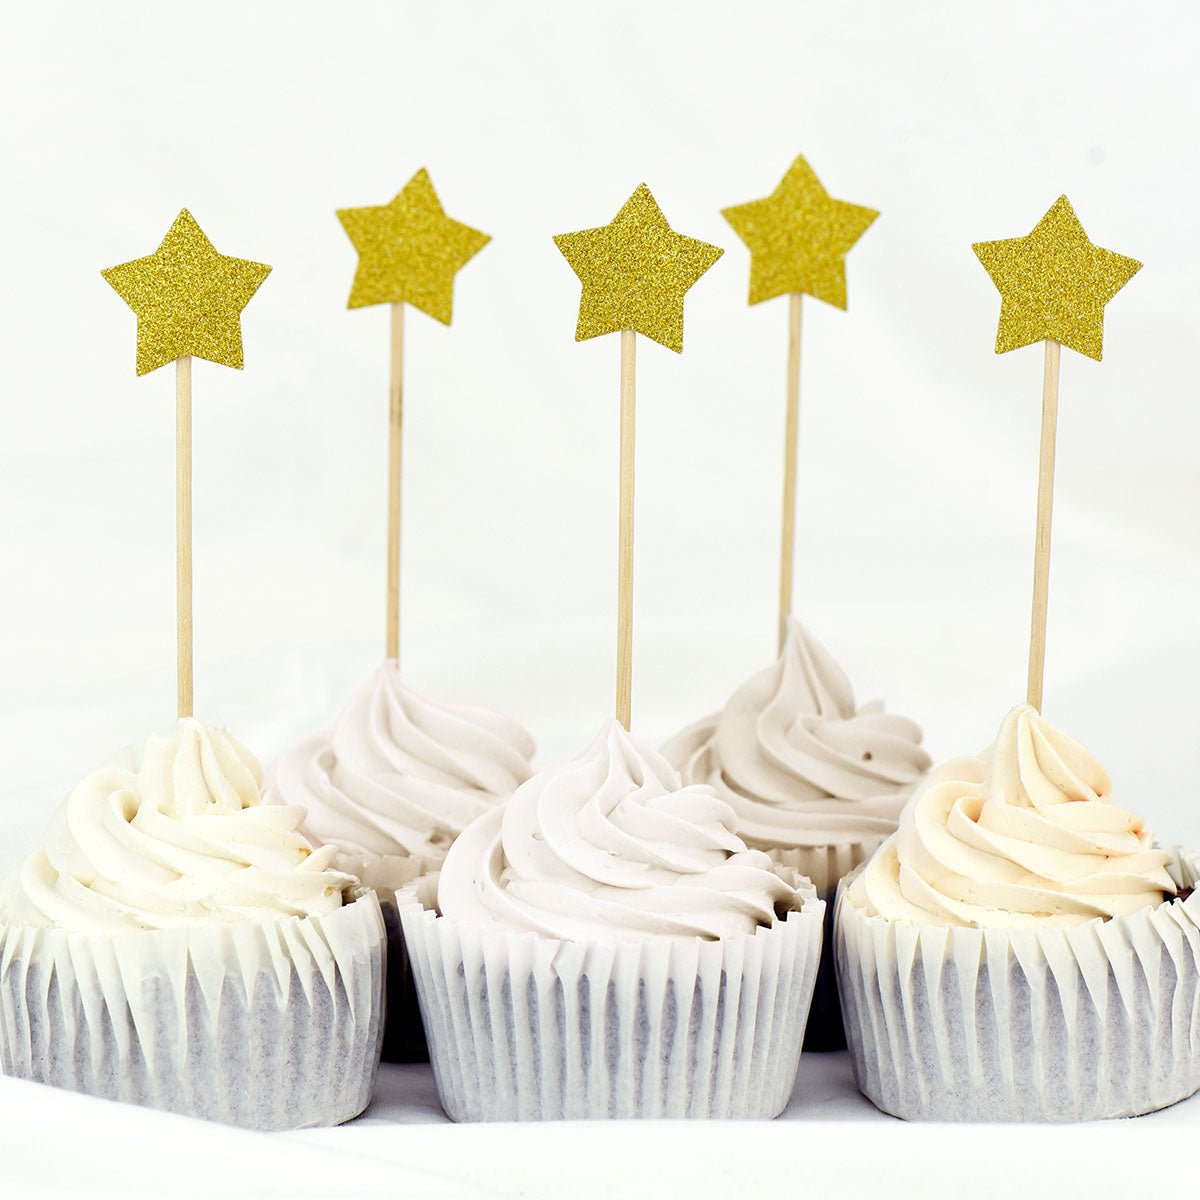 Gold Glitter Star Cake Toppers 50 Pcs